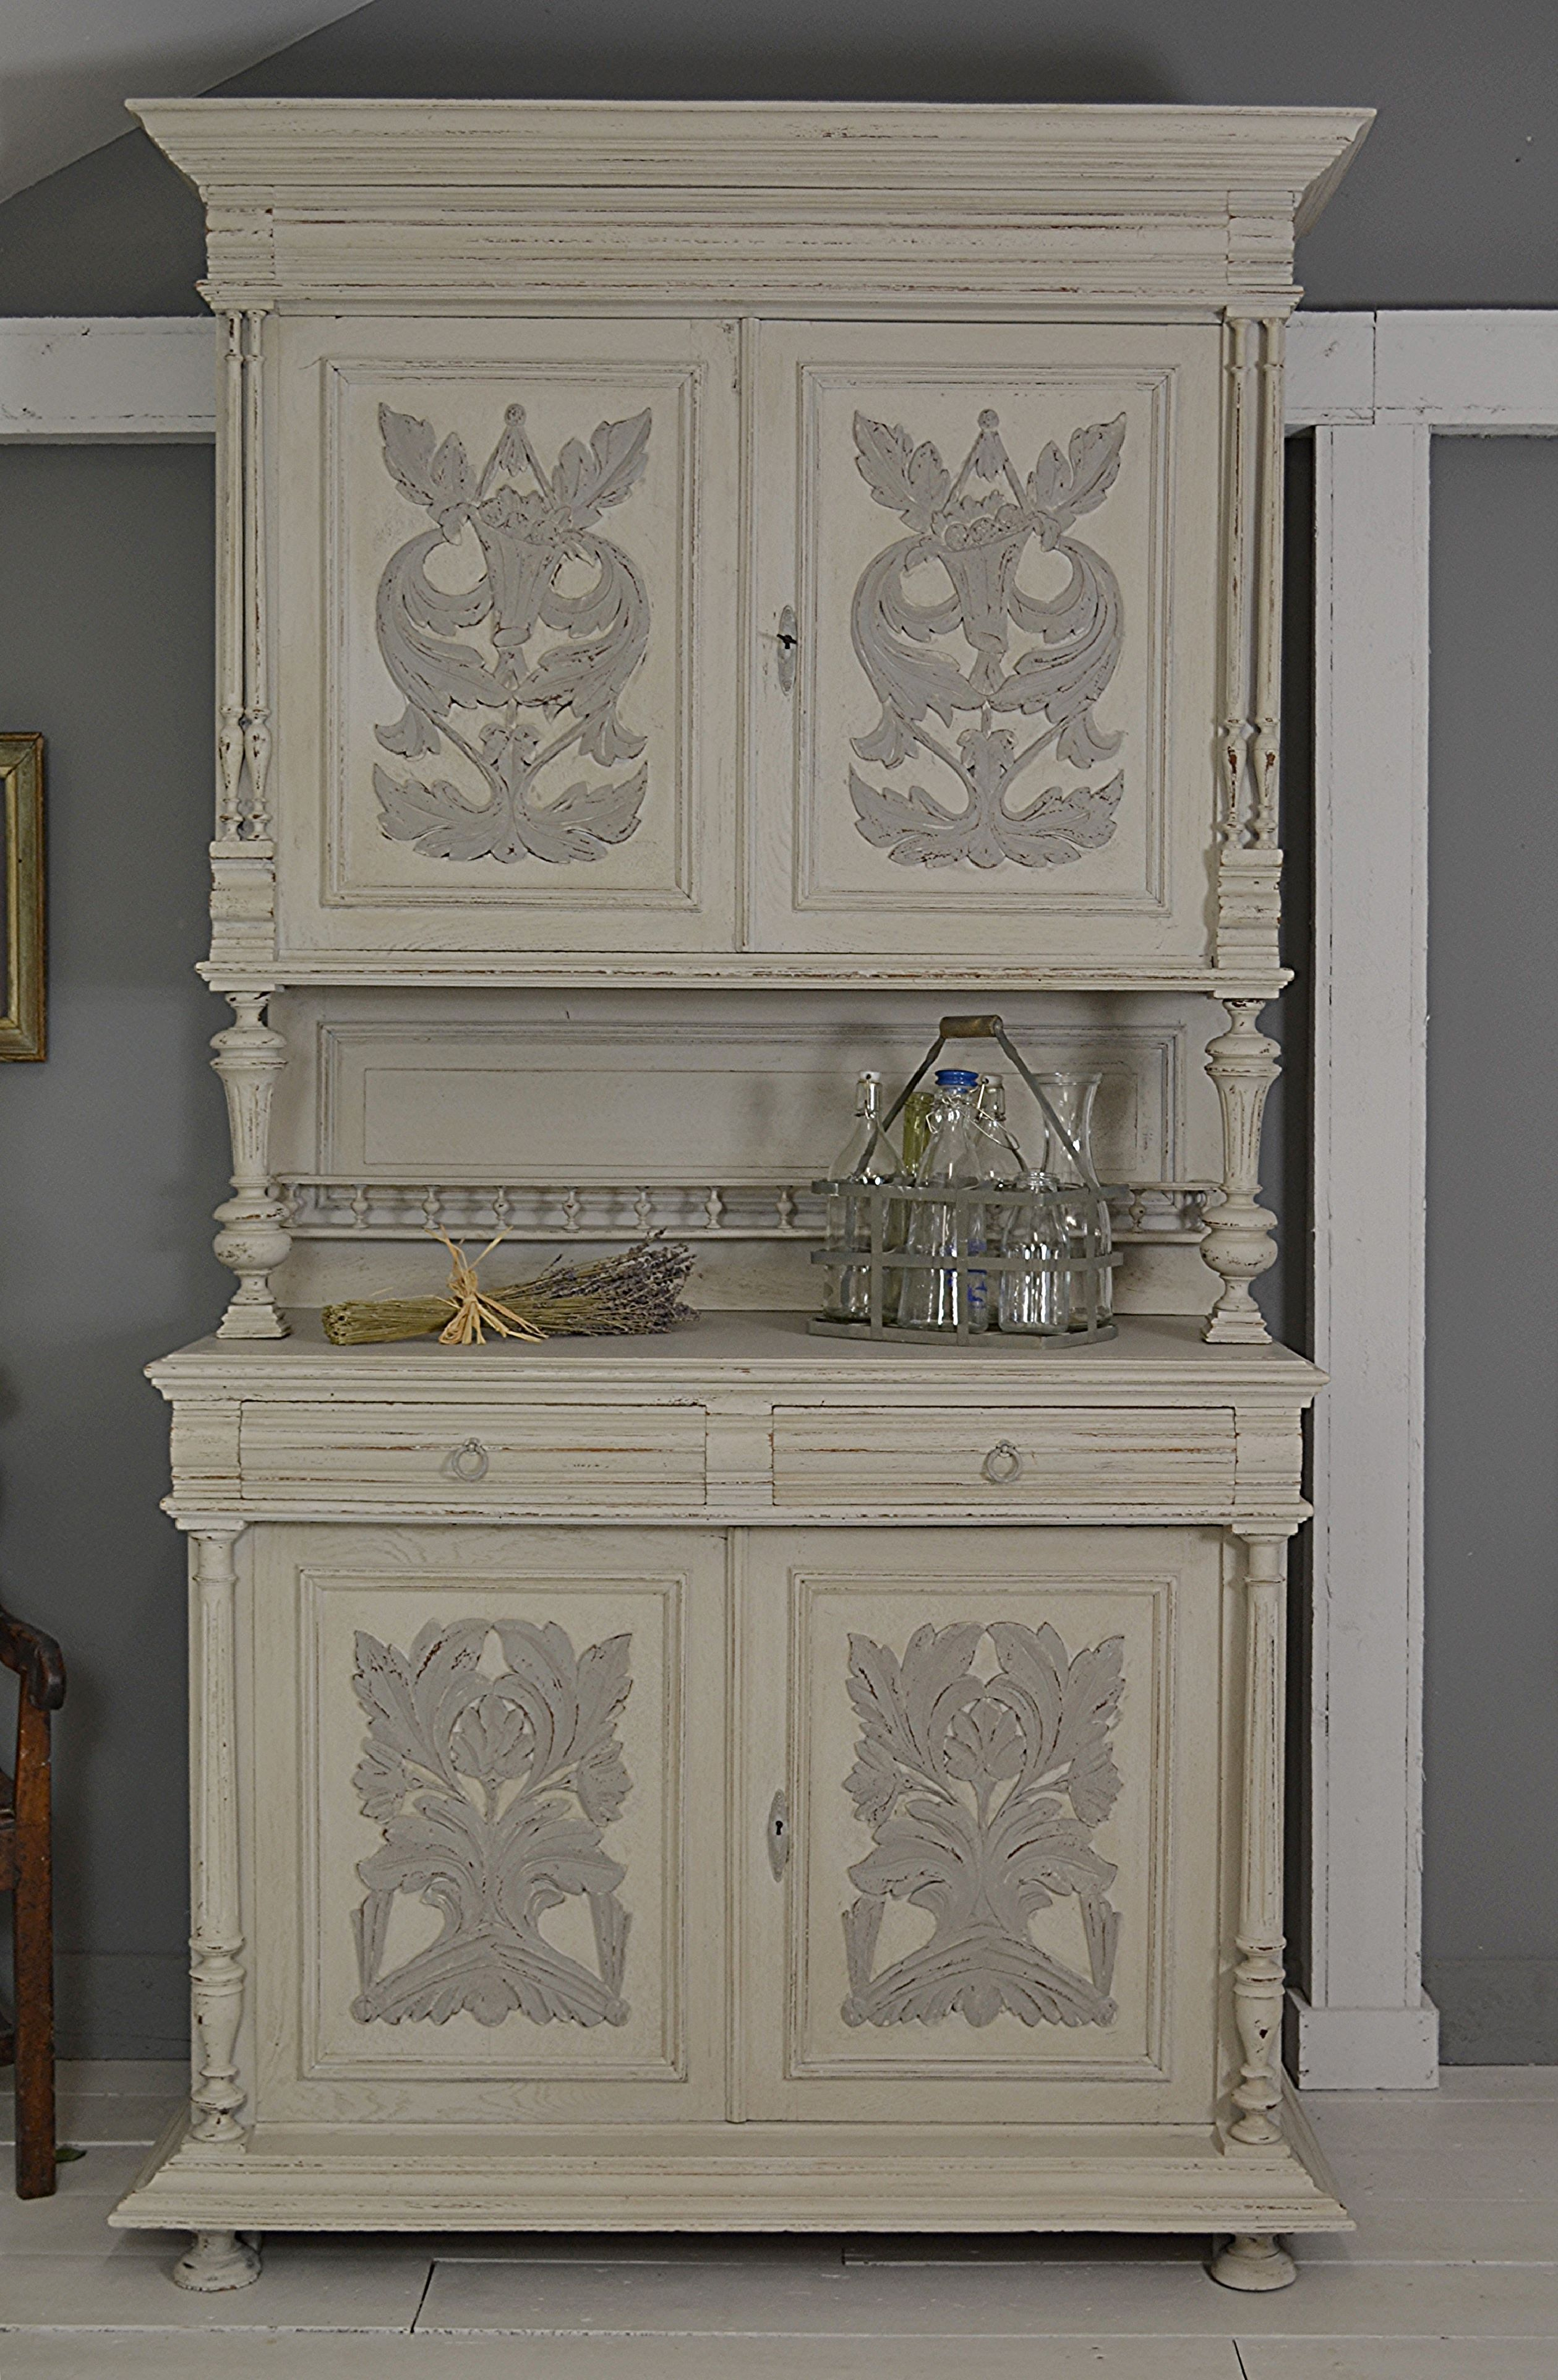 Letstrove This Stunning Example Of A French Buffet Has Plenty Of Storage With 2 Large Cupboard Areas Peindre Meuble Bois Mobilier De Salon Relooking Meuble